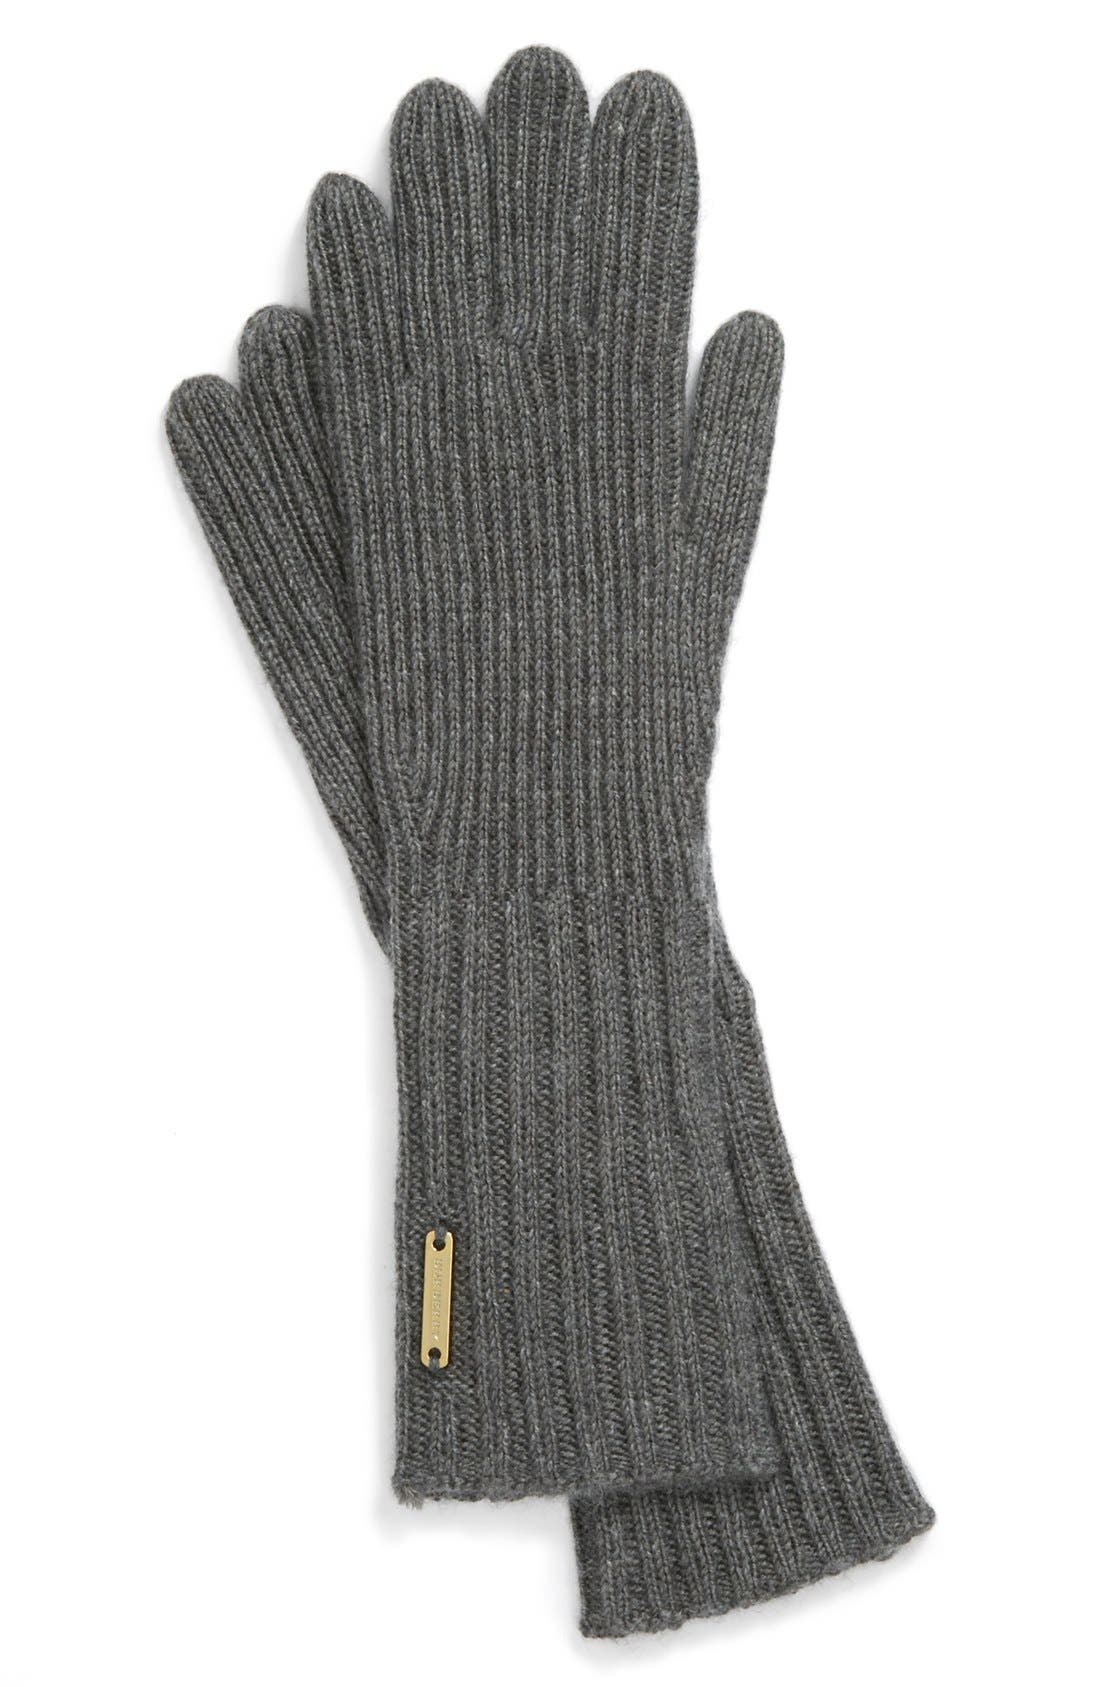 Main Image - Burberry Cashmere Blend Touch Tech Knit Gloves